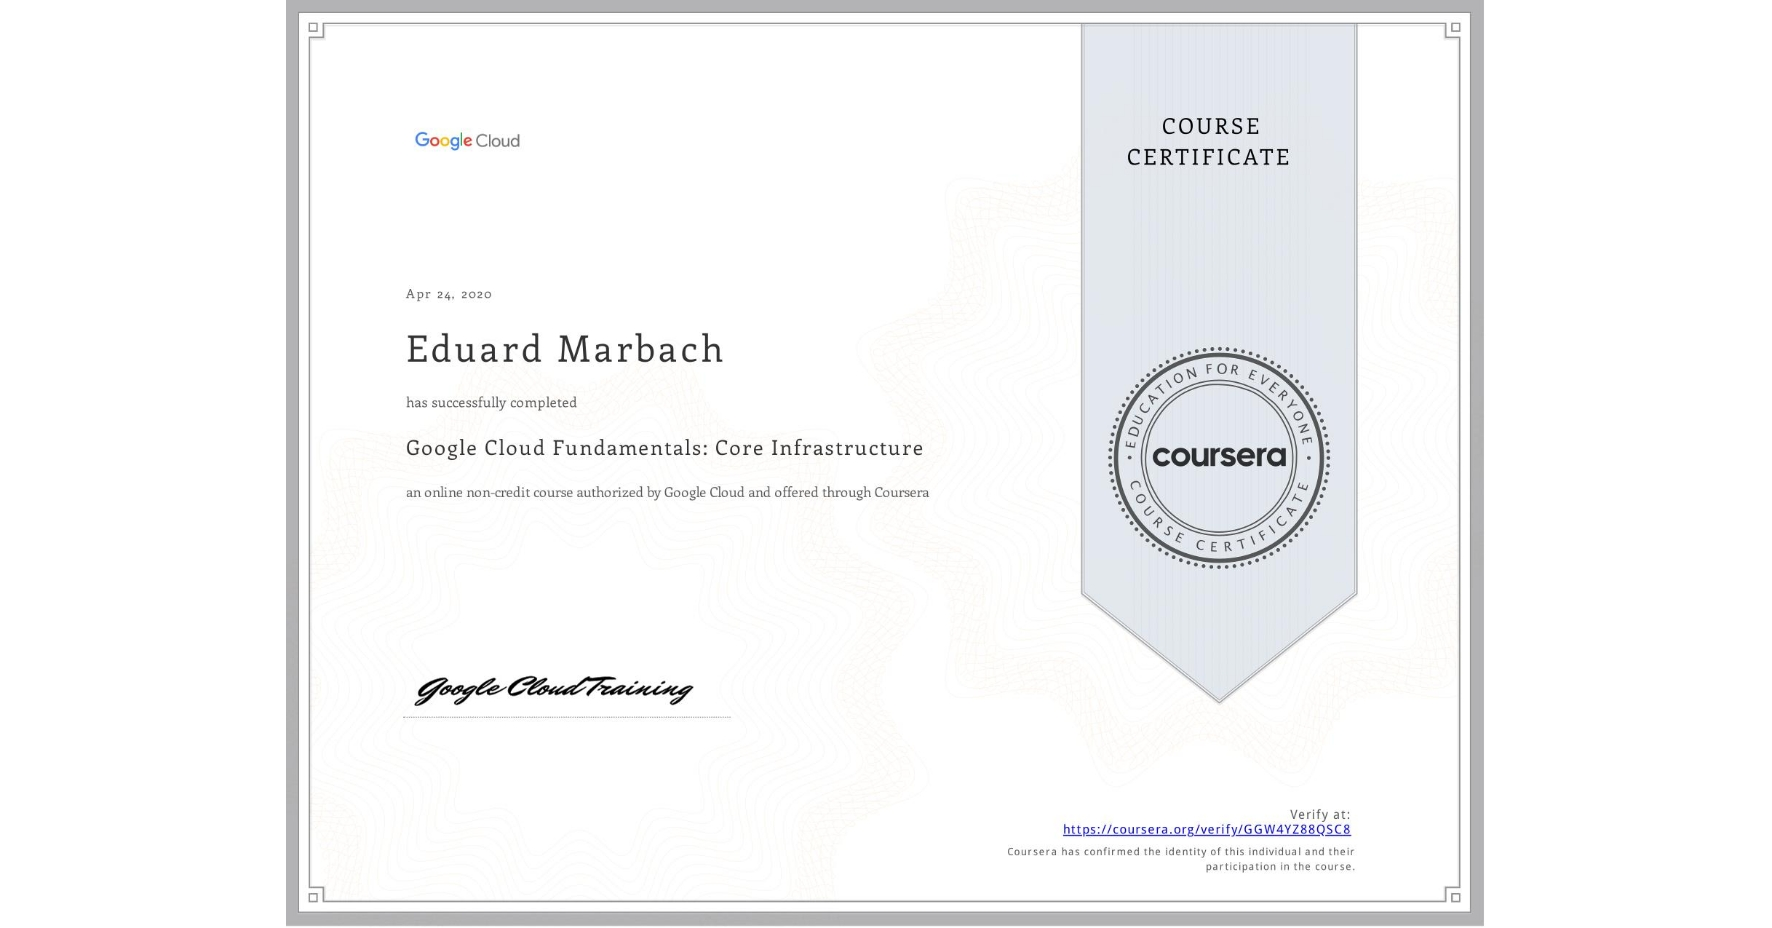 View certificate for Eduard Marbach, Google Cloud Platform Fundamentals: Core Infrastructure, an online non-credit course authorized by Google Cloud and offered through Coursera